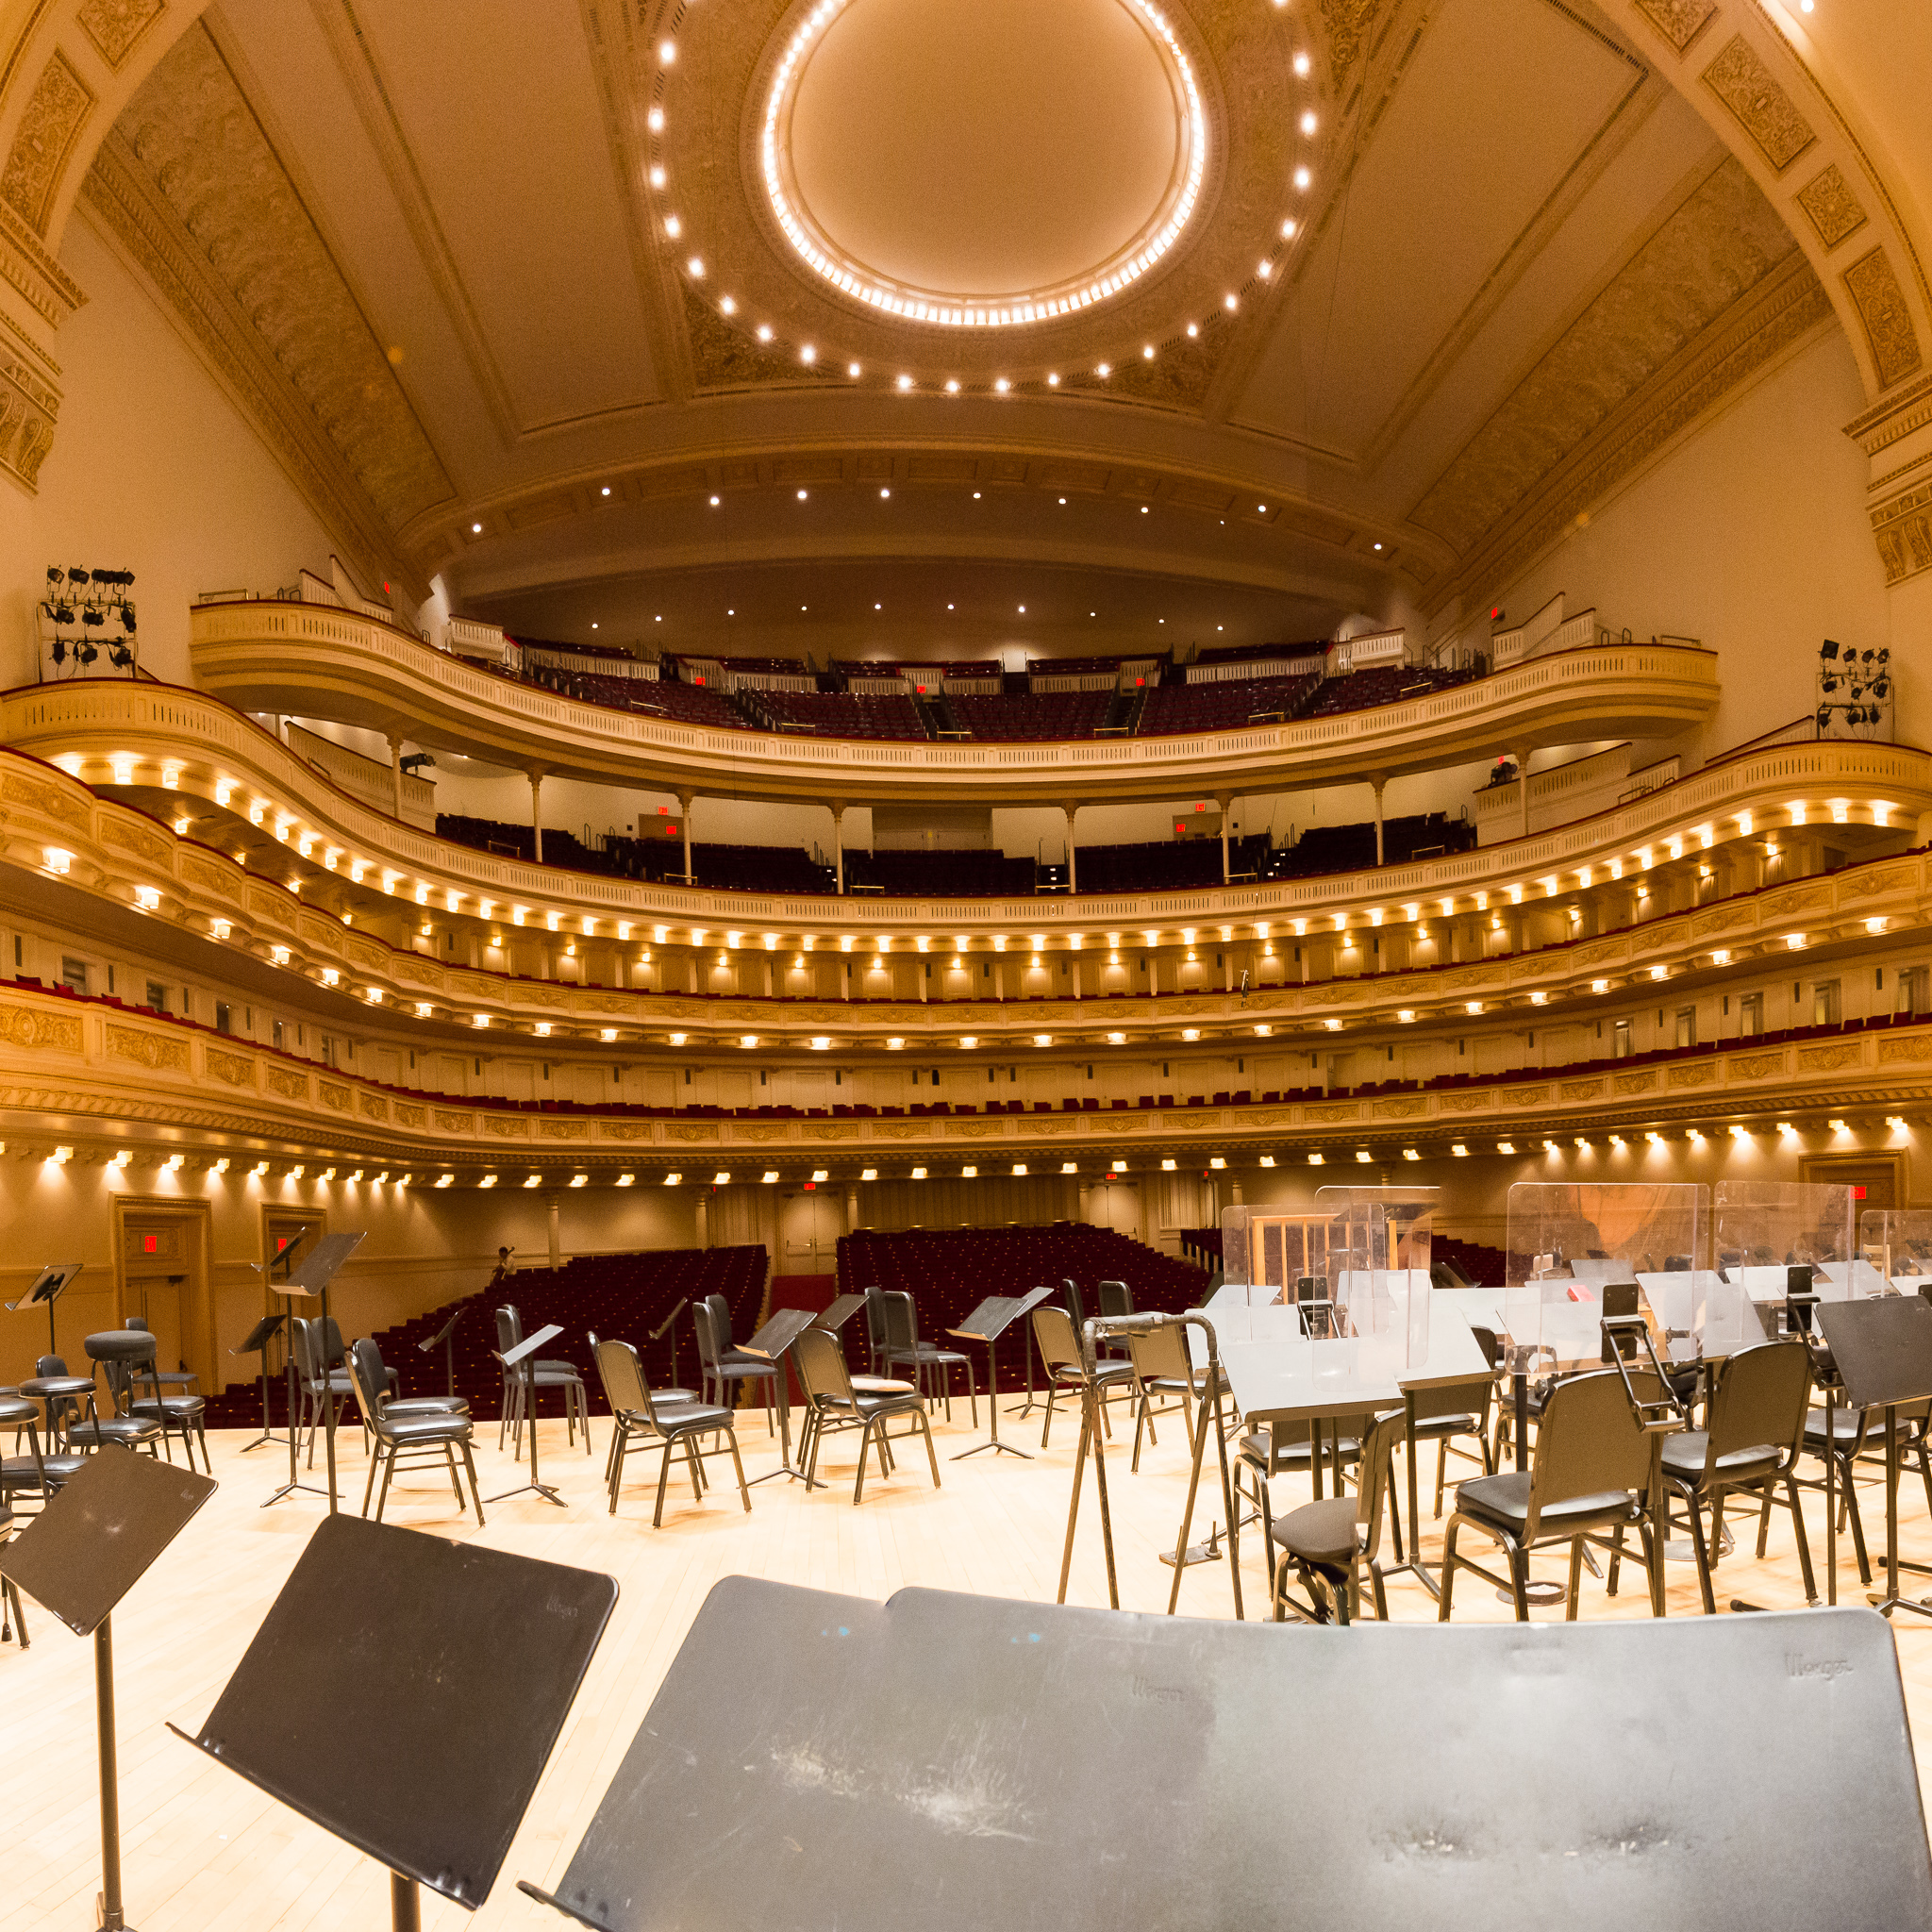 At Carnegie Hall - the view from the Principal Trombone chair prior to the BSO sound check.